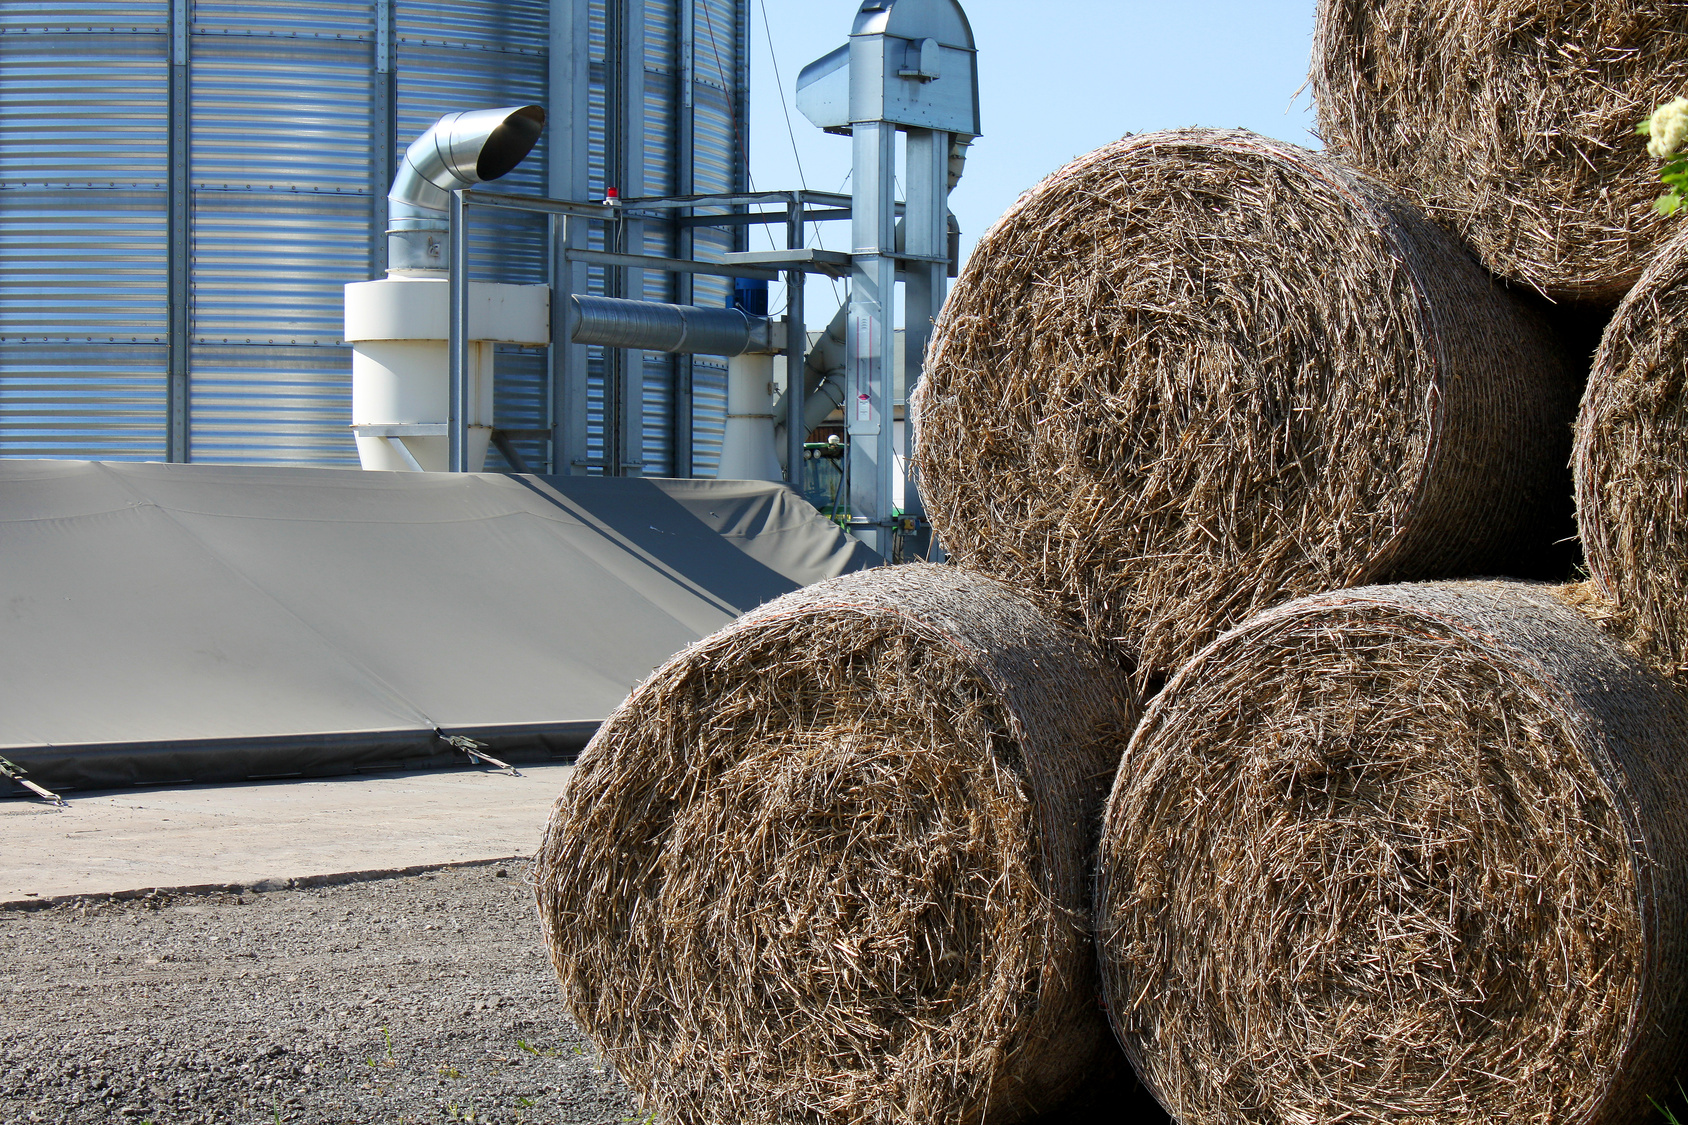 Before putting hay in the silo, it needs to be checked thoroughly for moisture content.